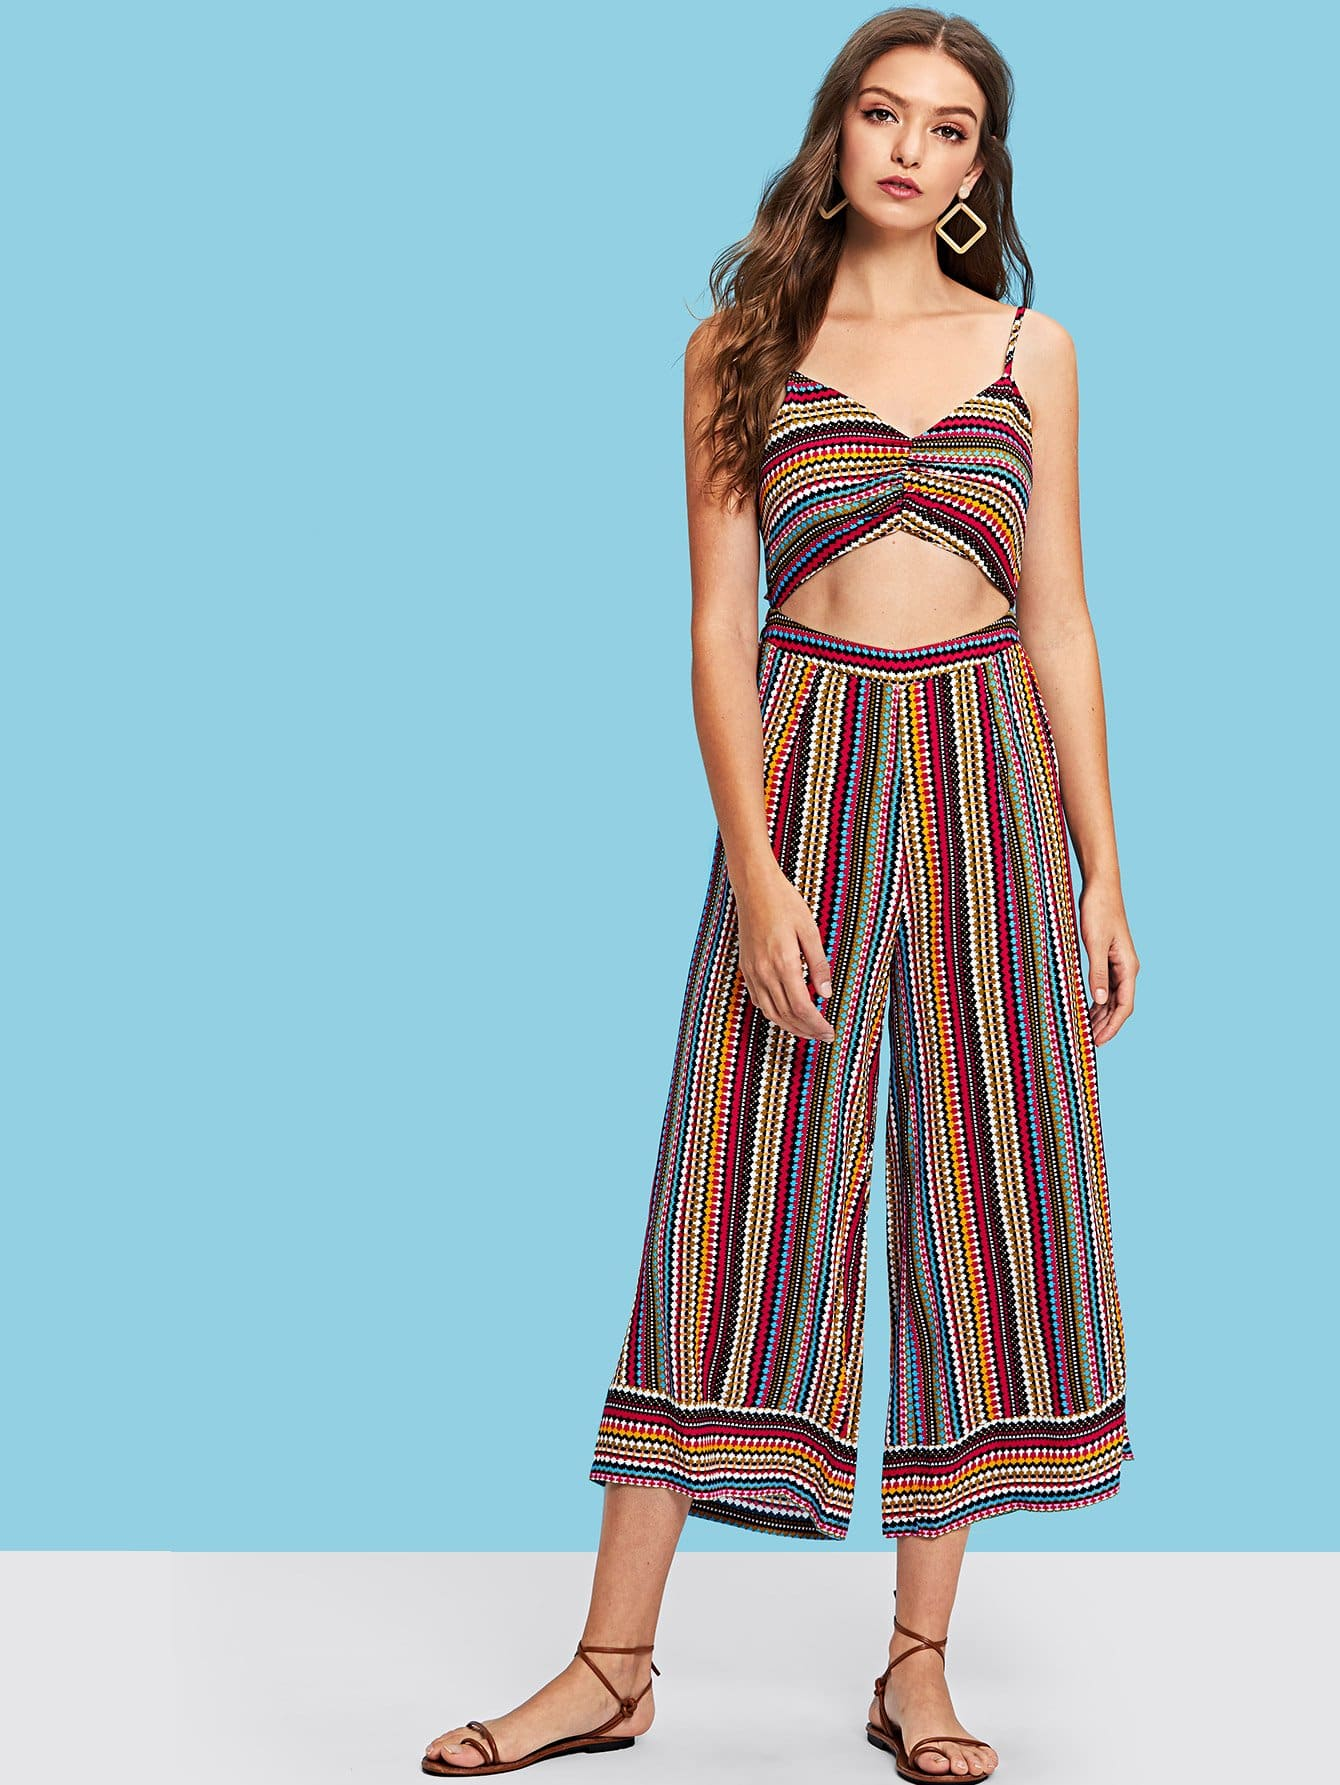 Ruched Front Cutout Midriff Striped Cami Jumpsuit drawstring front cutout midriff tropical jumpsuit